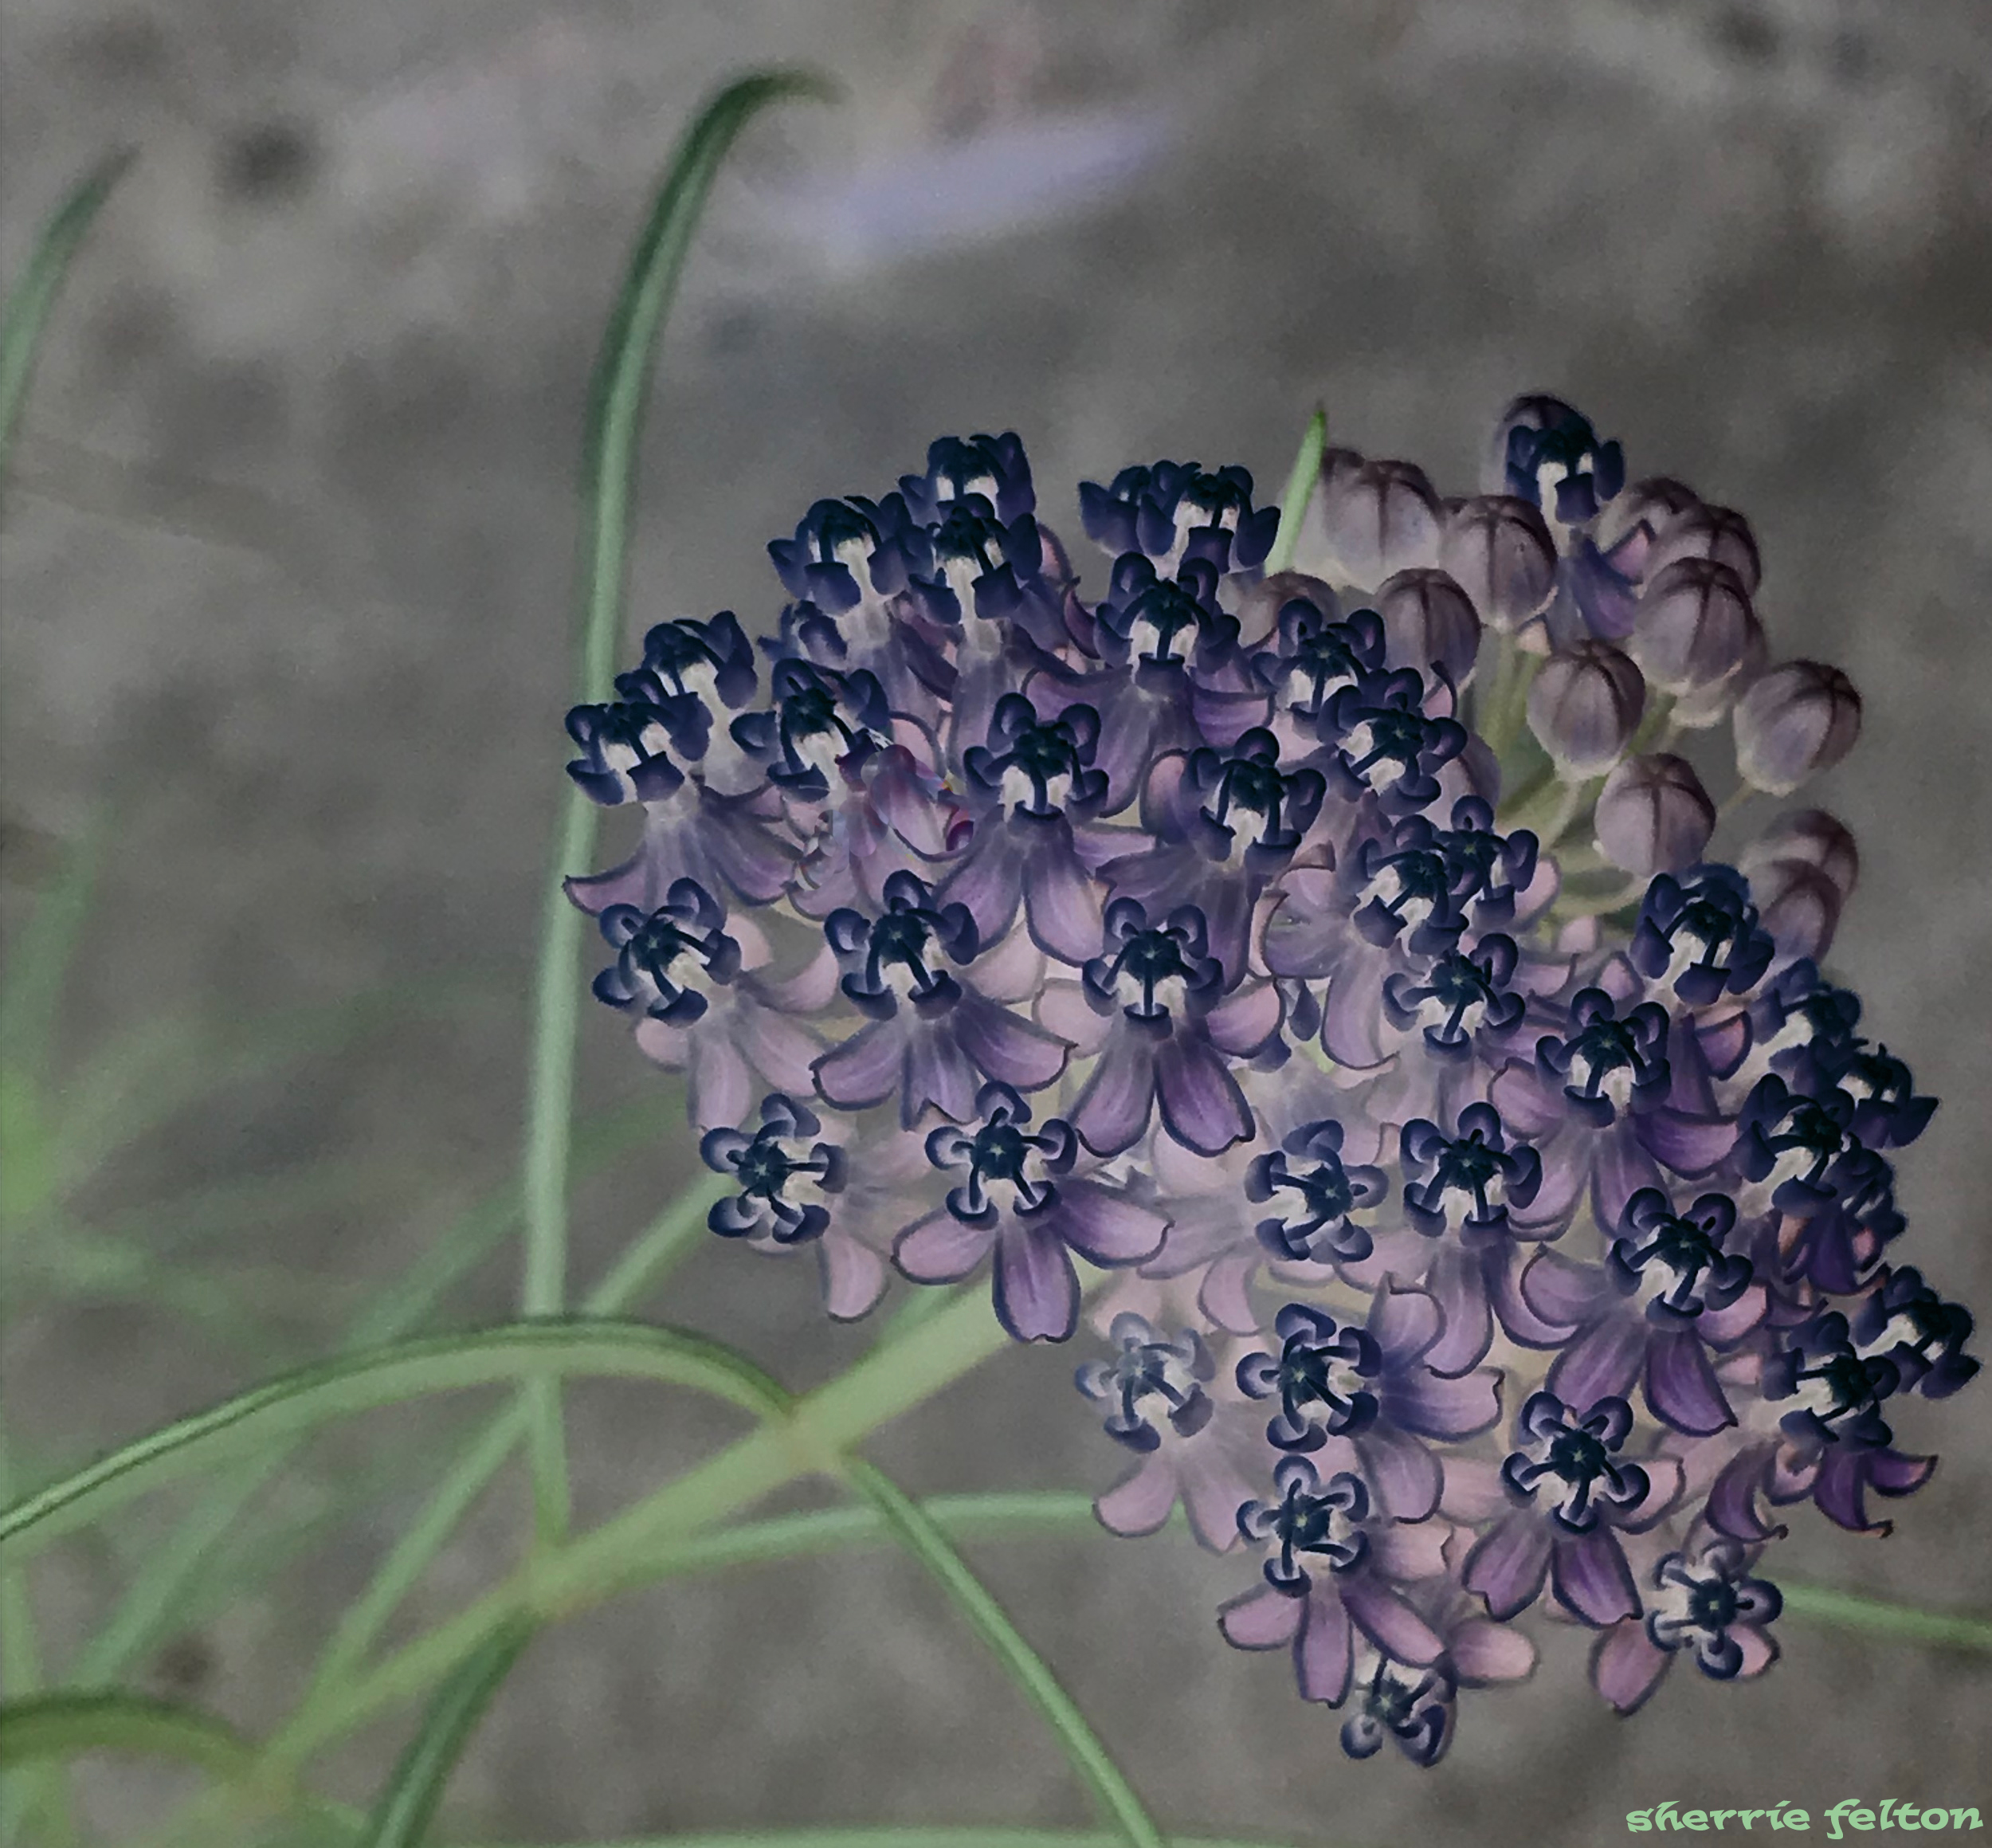 Photo of a cluster of Narrowleaf milkweed blossoms through an after midnight filter.